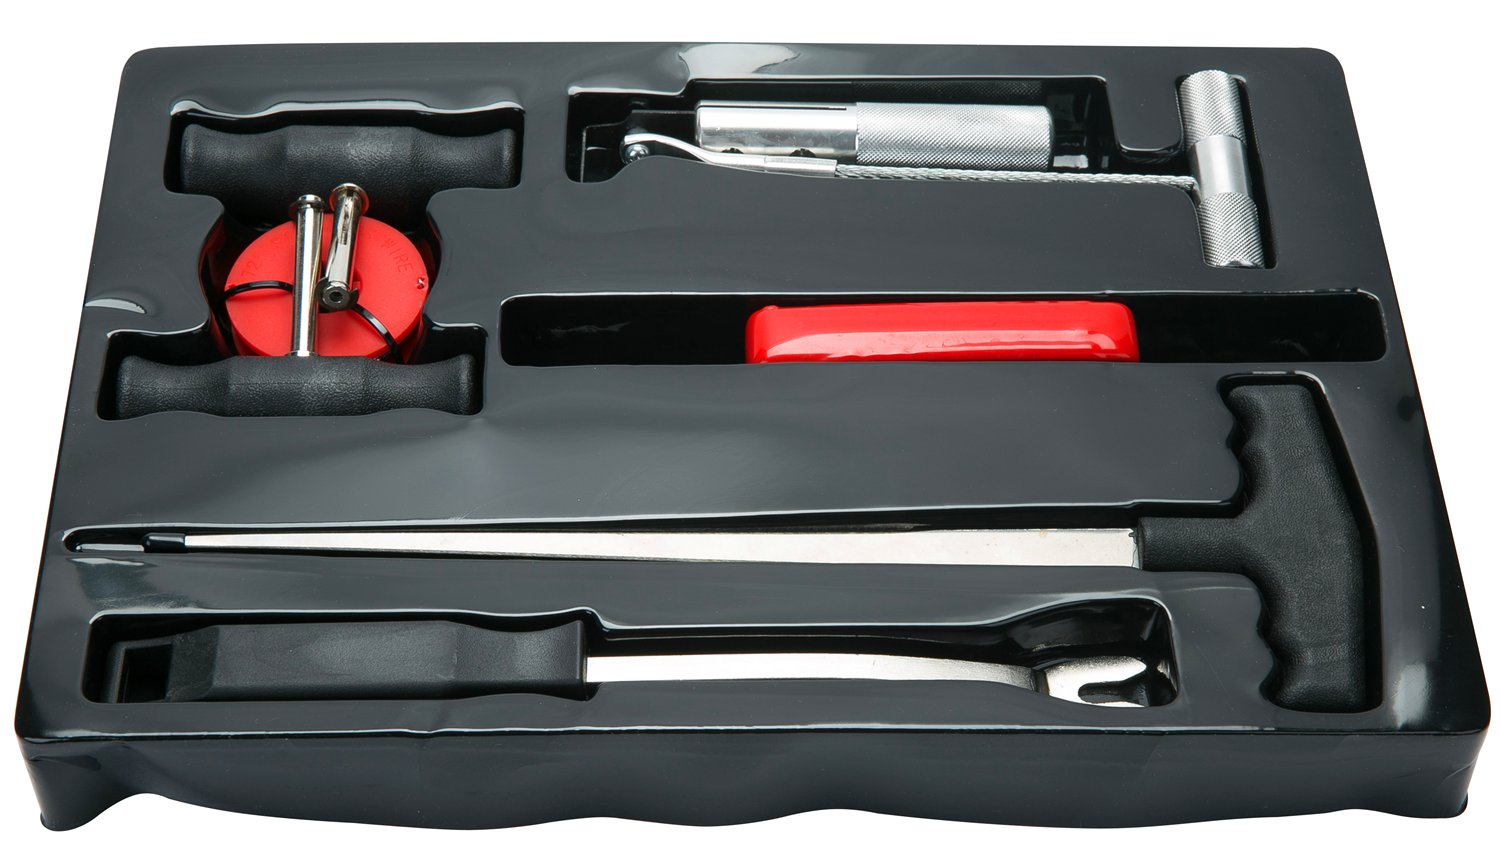 8MILELAKE 7pc Classic Vintage Car Molded Windscreen Removal Tool Set by 8MILELAKE (Image #2)